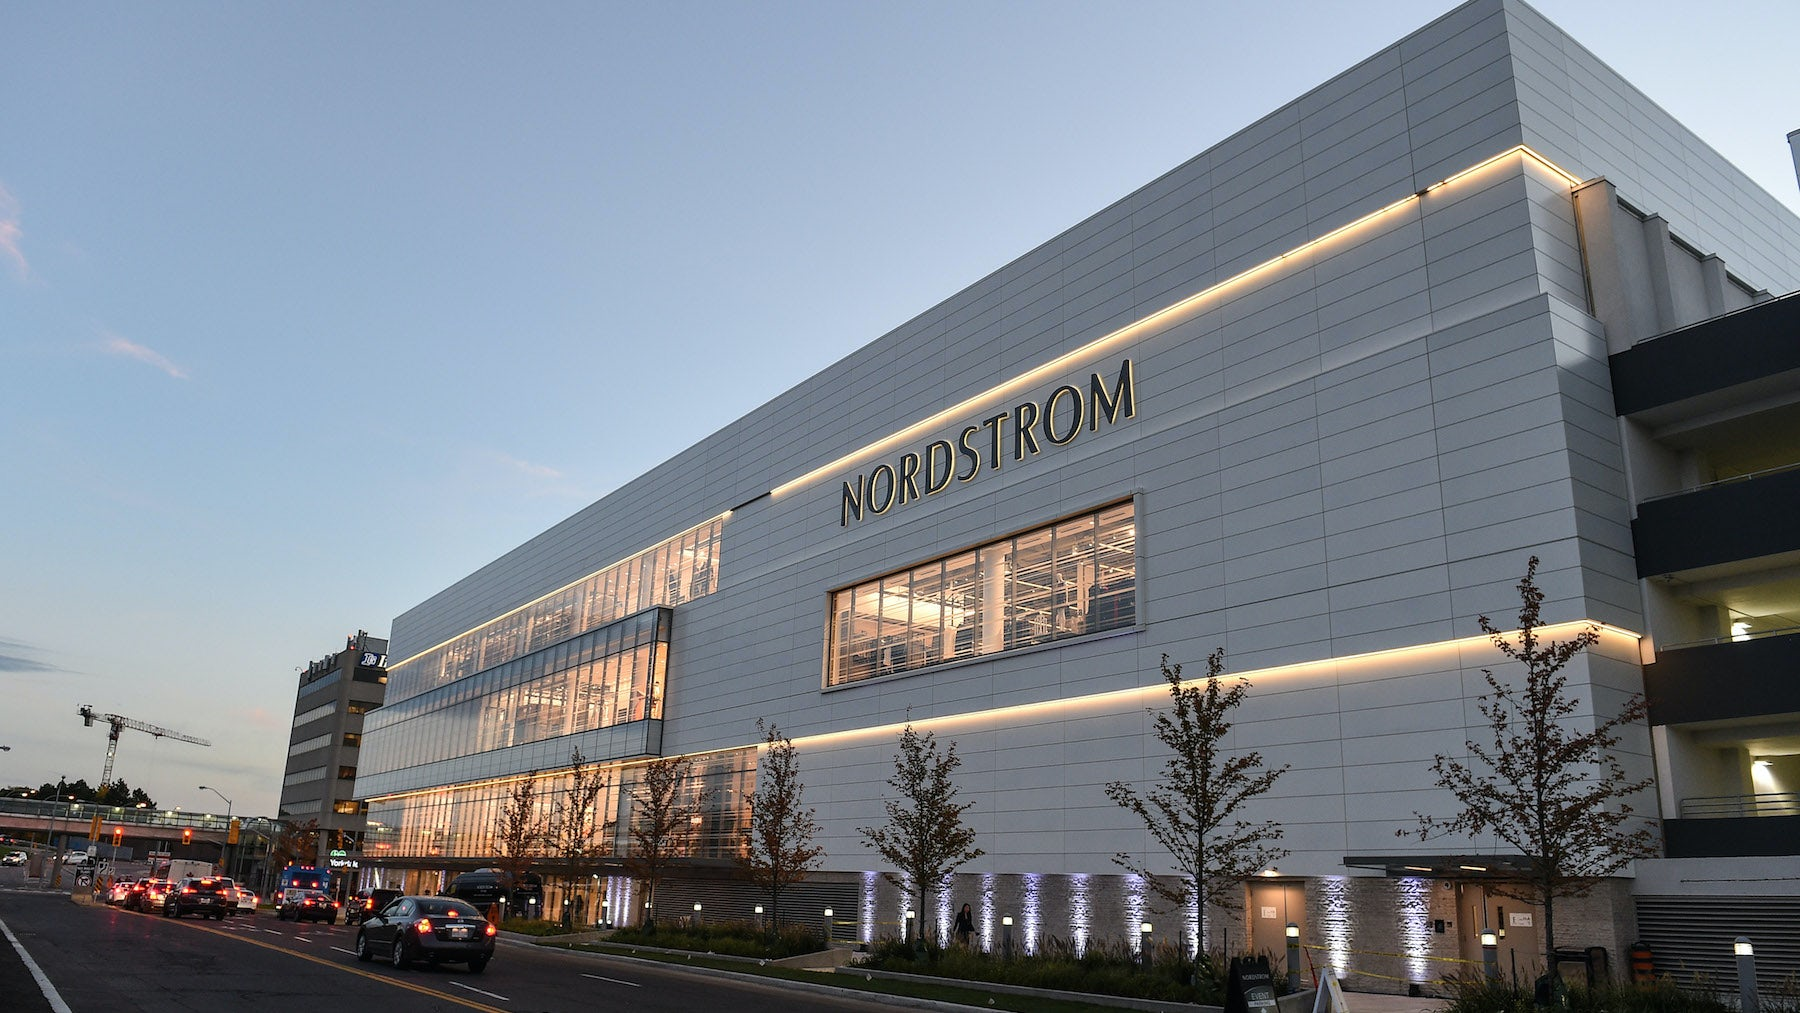 nordstrom analysis In 1905, the retail industry was founded which is known as nordstrom and is founded by john w nordstrom the company is headquartered in seattle, washington, us.